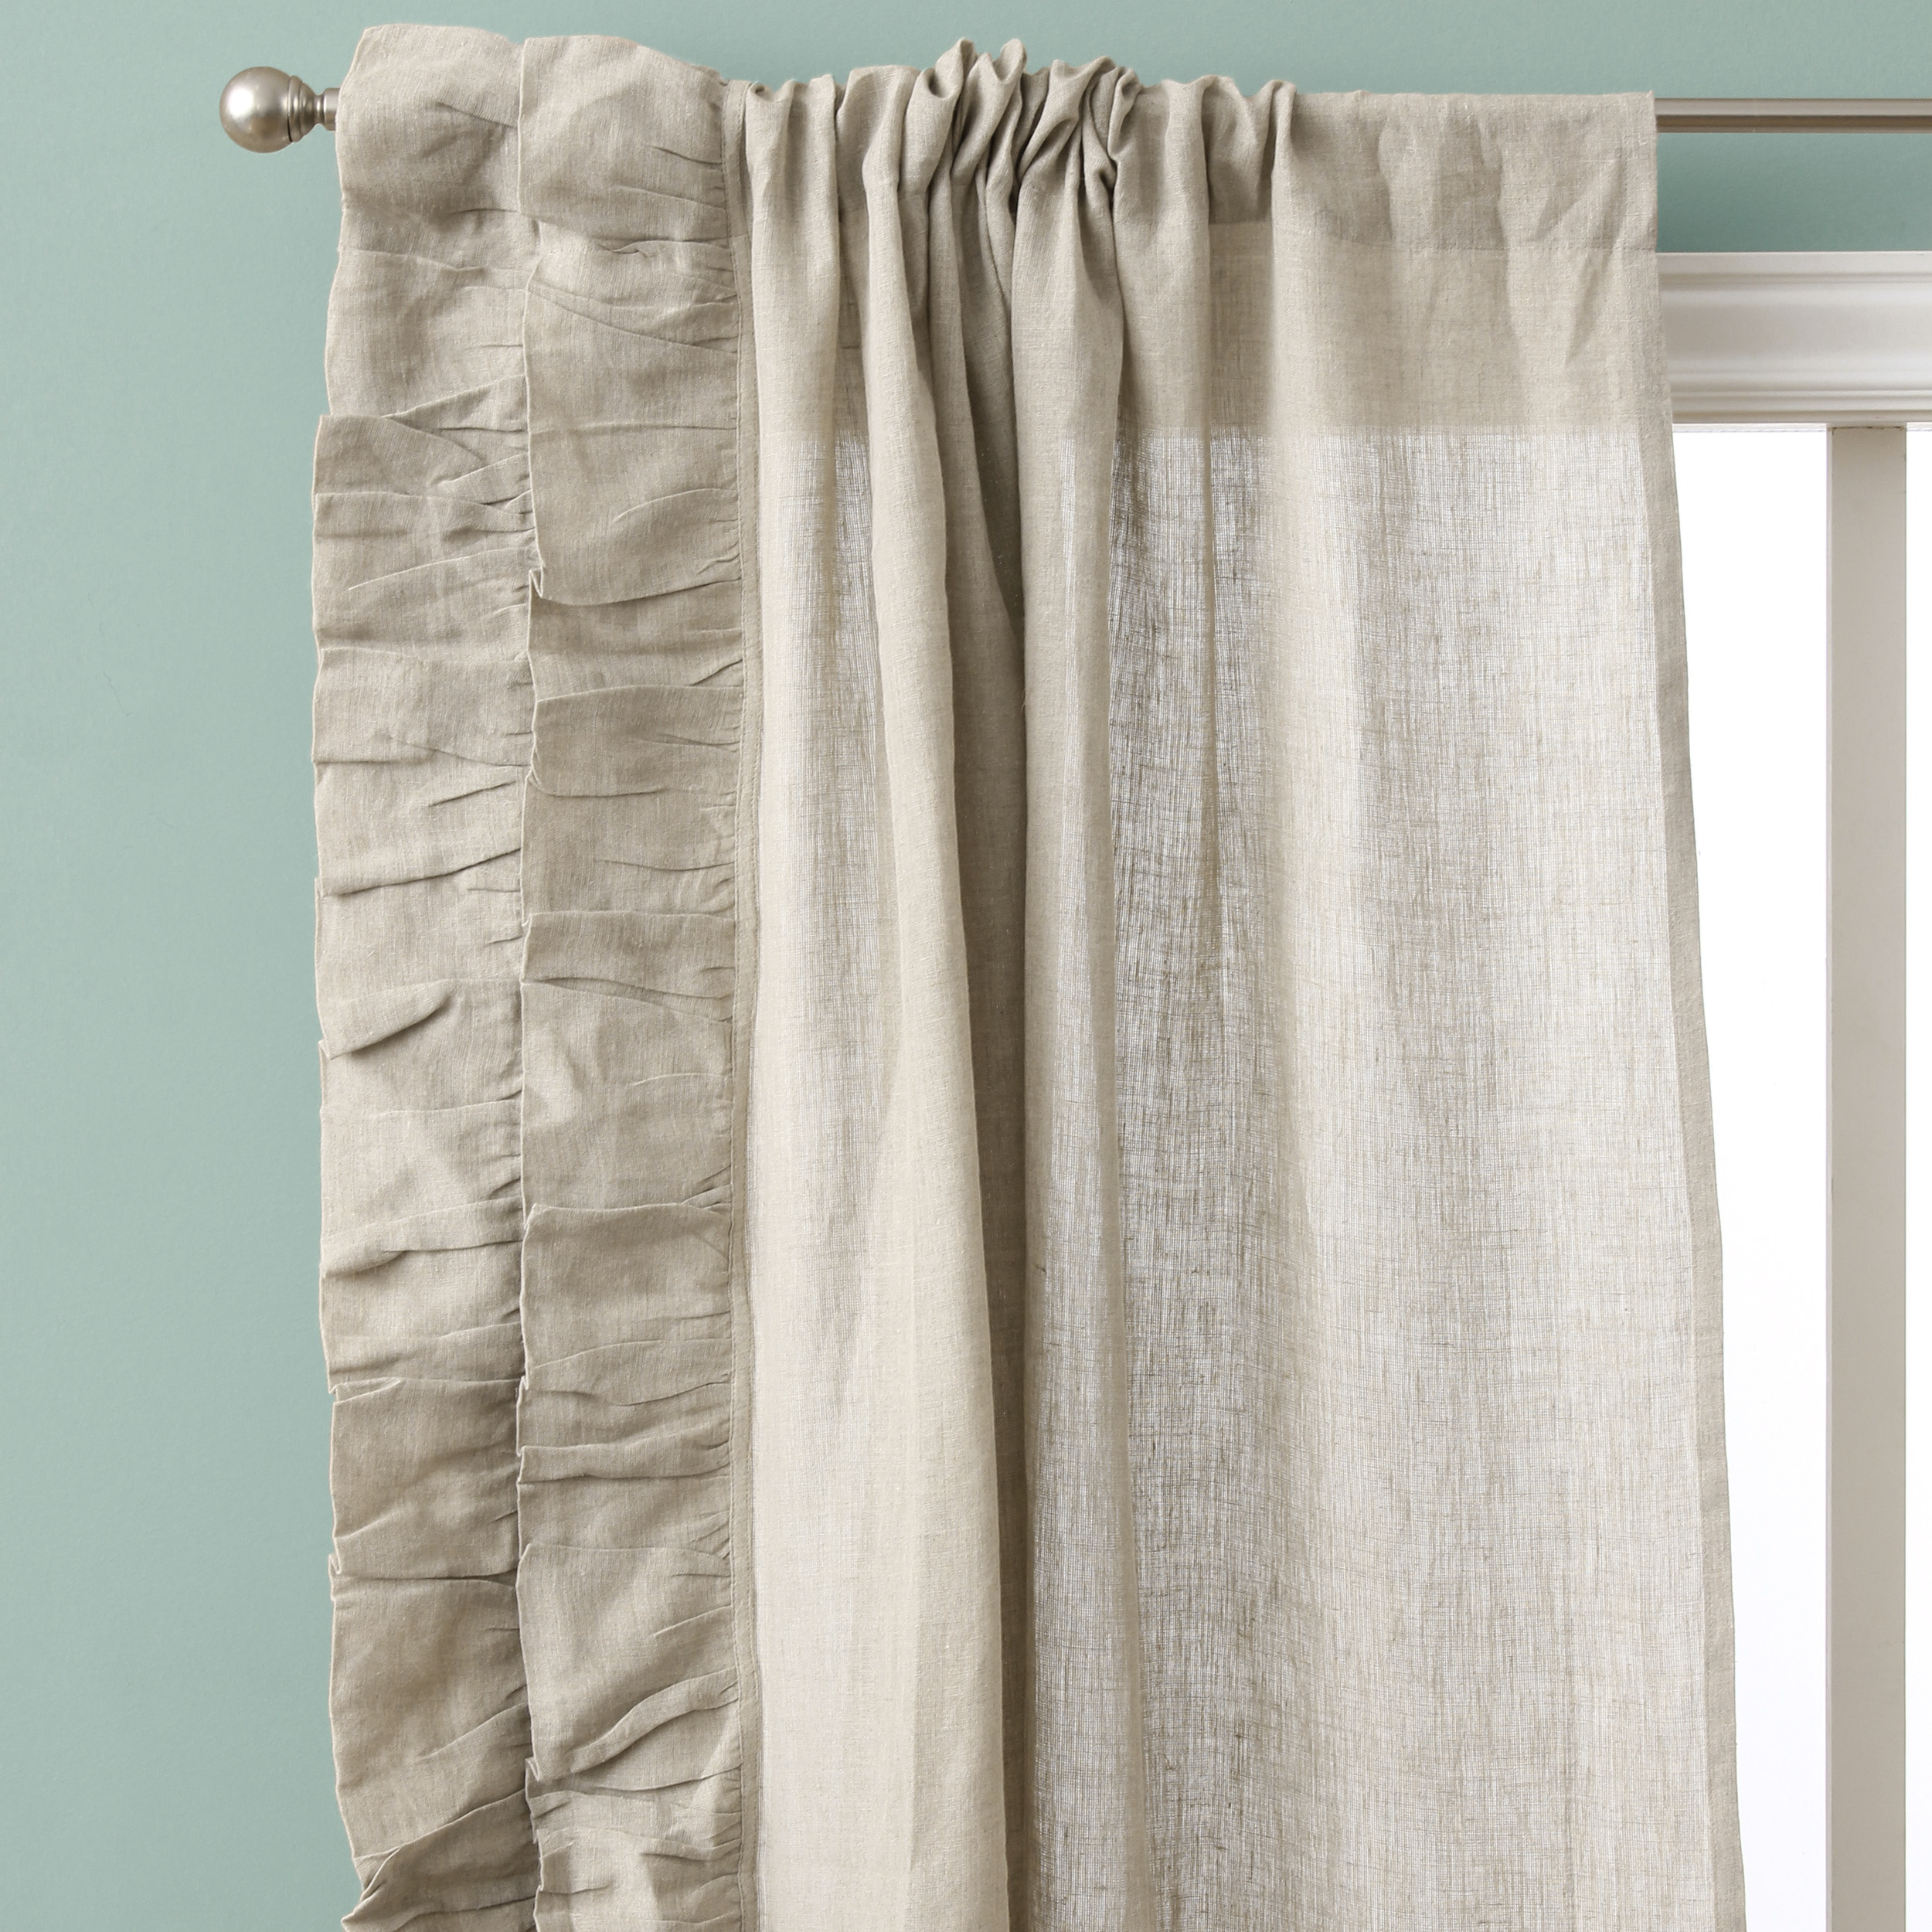 Ruffle Curtain Panel Cottage Home Linen Ruffled Curtain Panel Pair